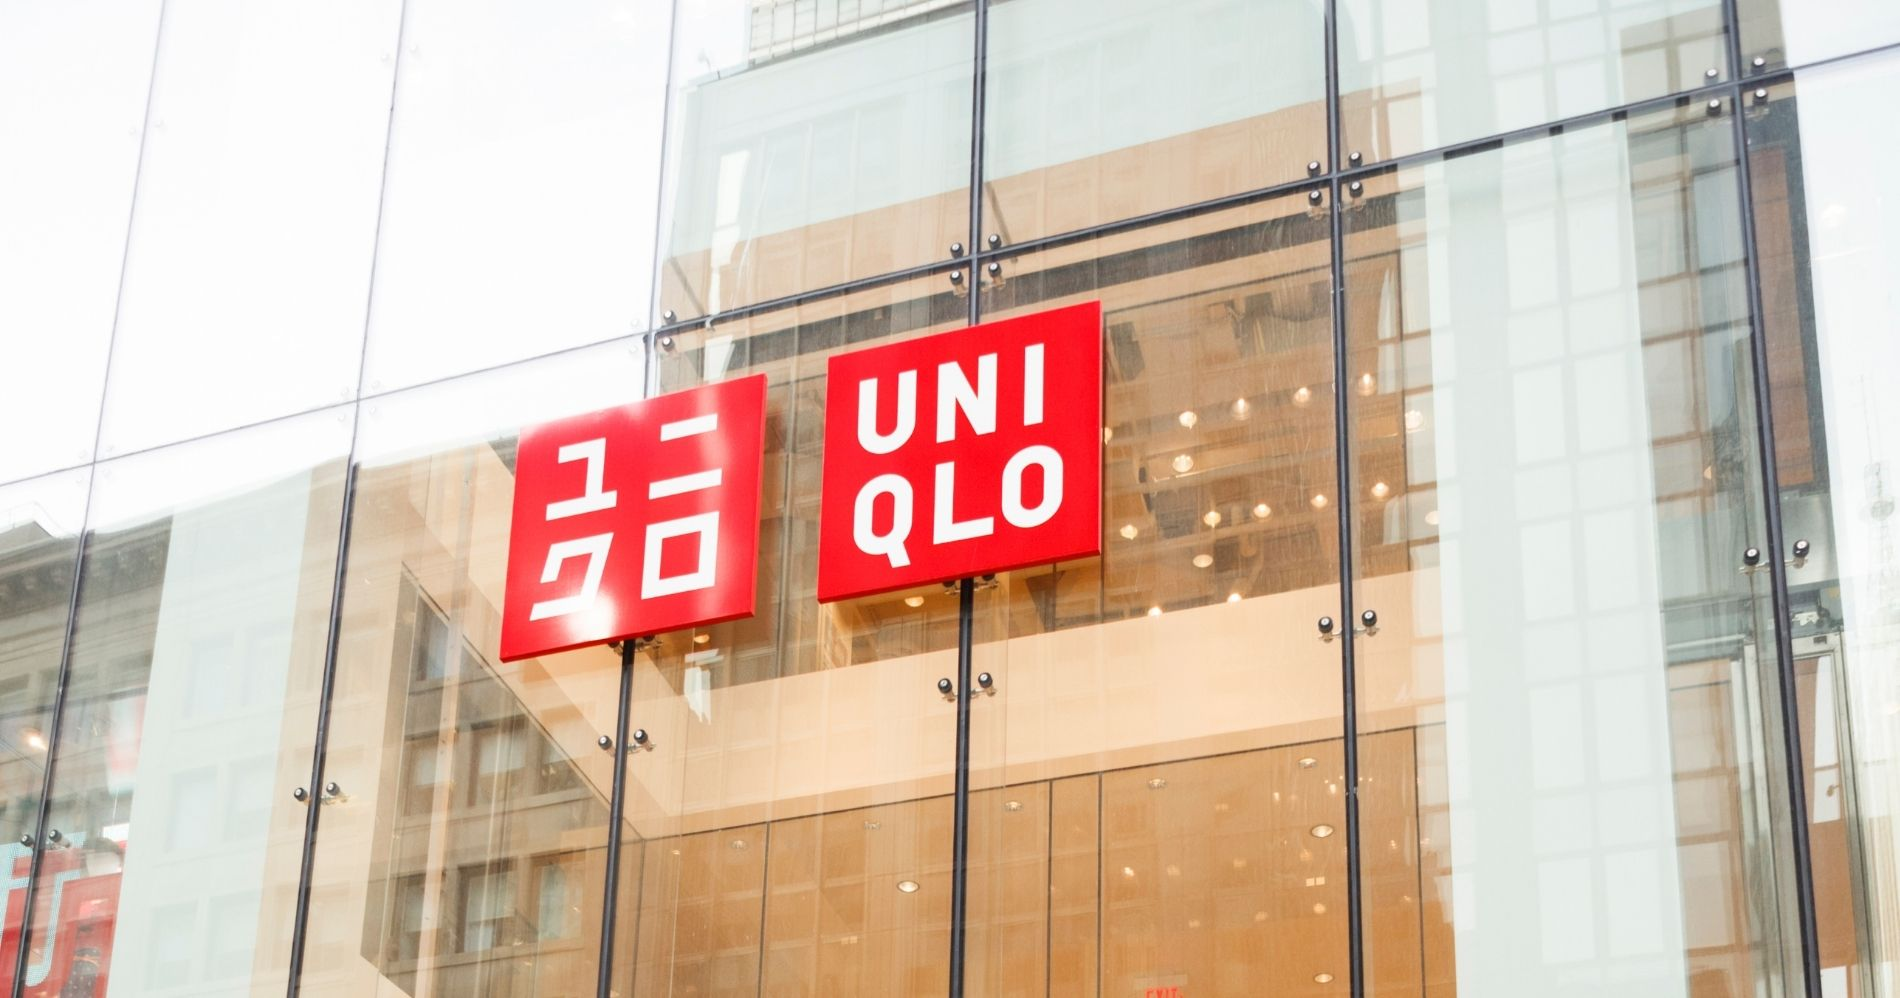 Uniqlo - Canva